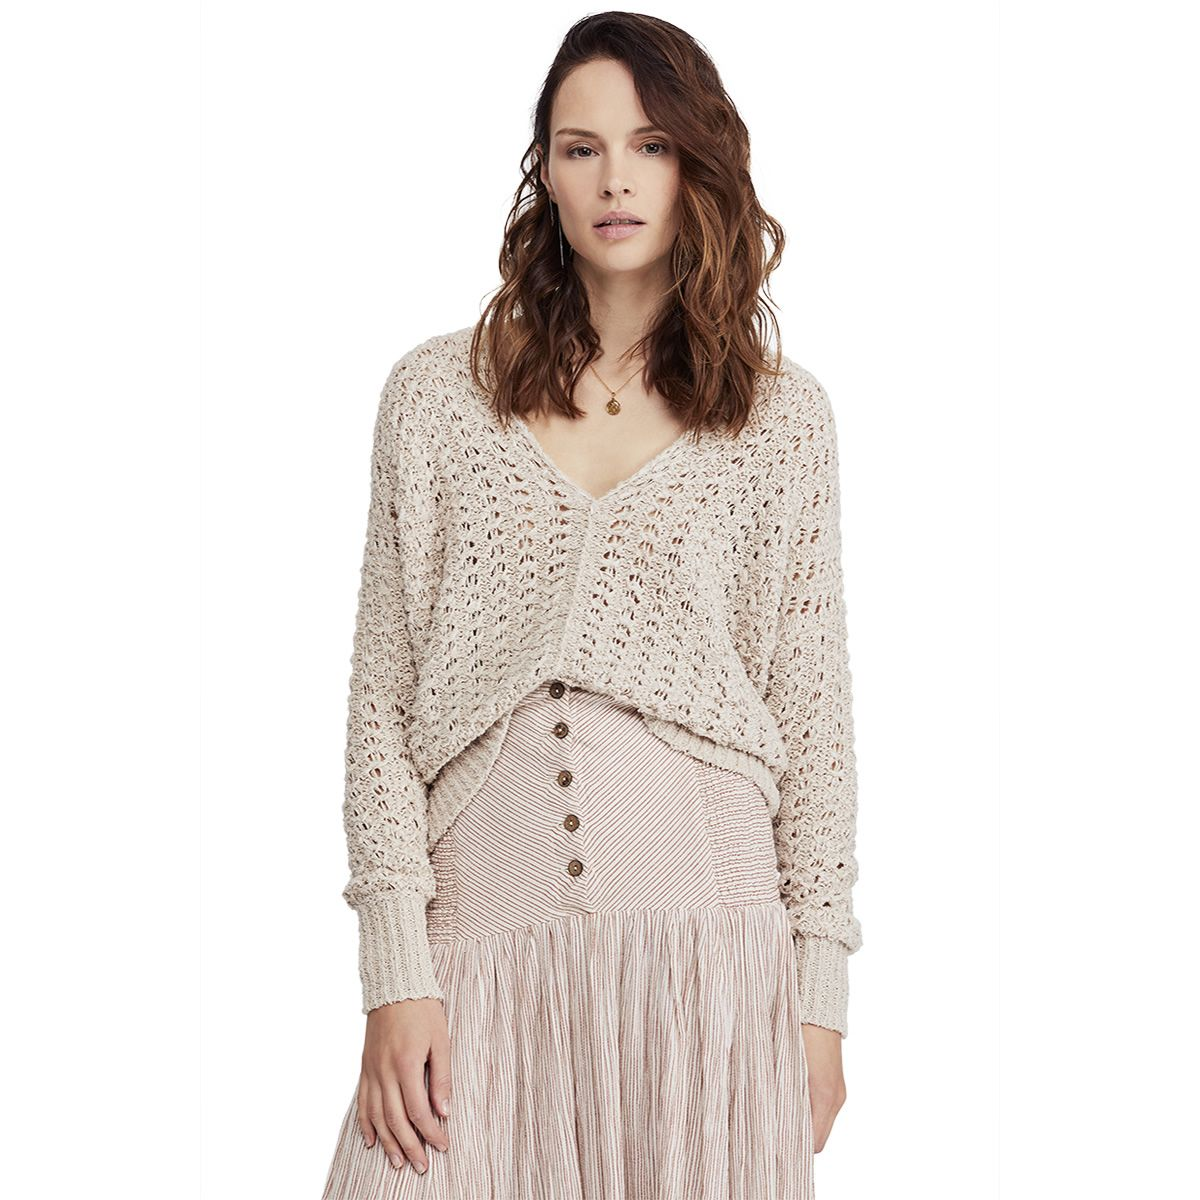 51cda77d7825 Free People Clothing - Womens Apparel - Macy s